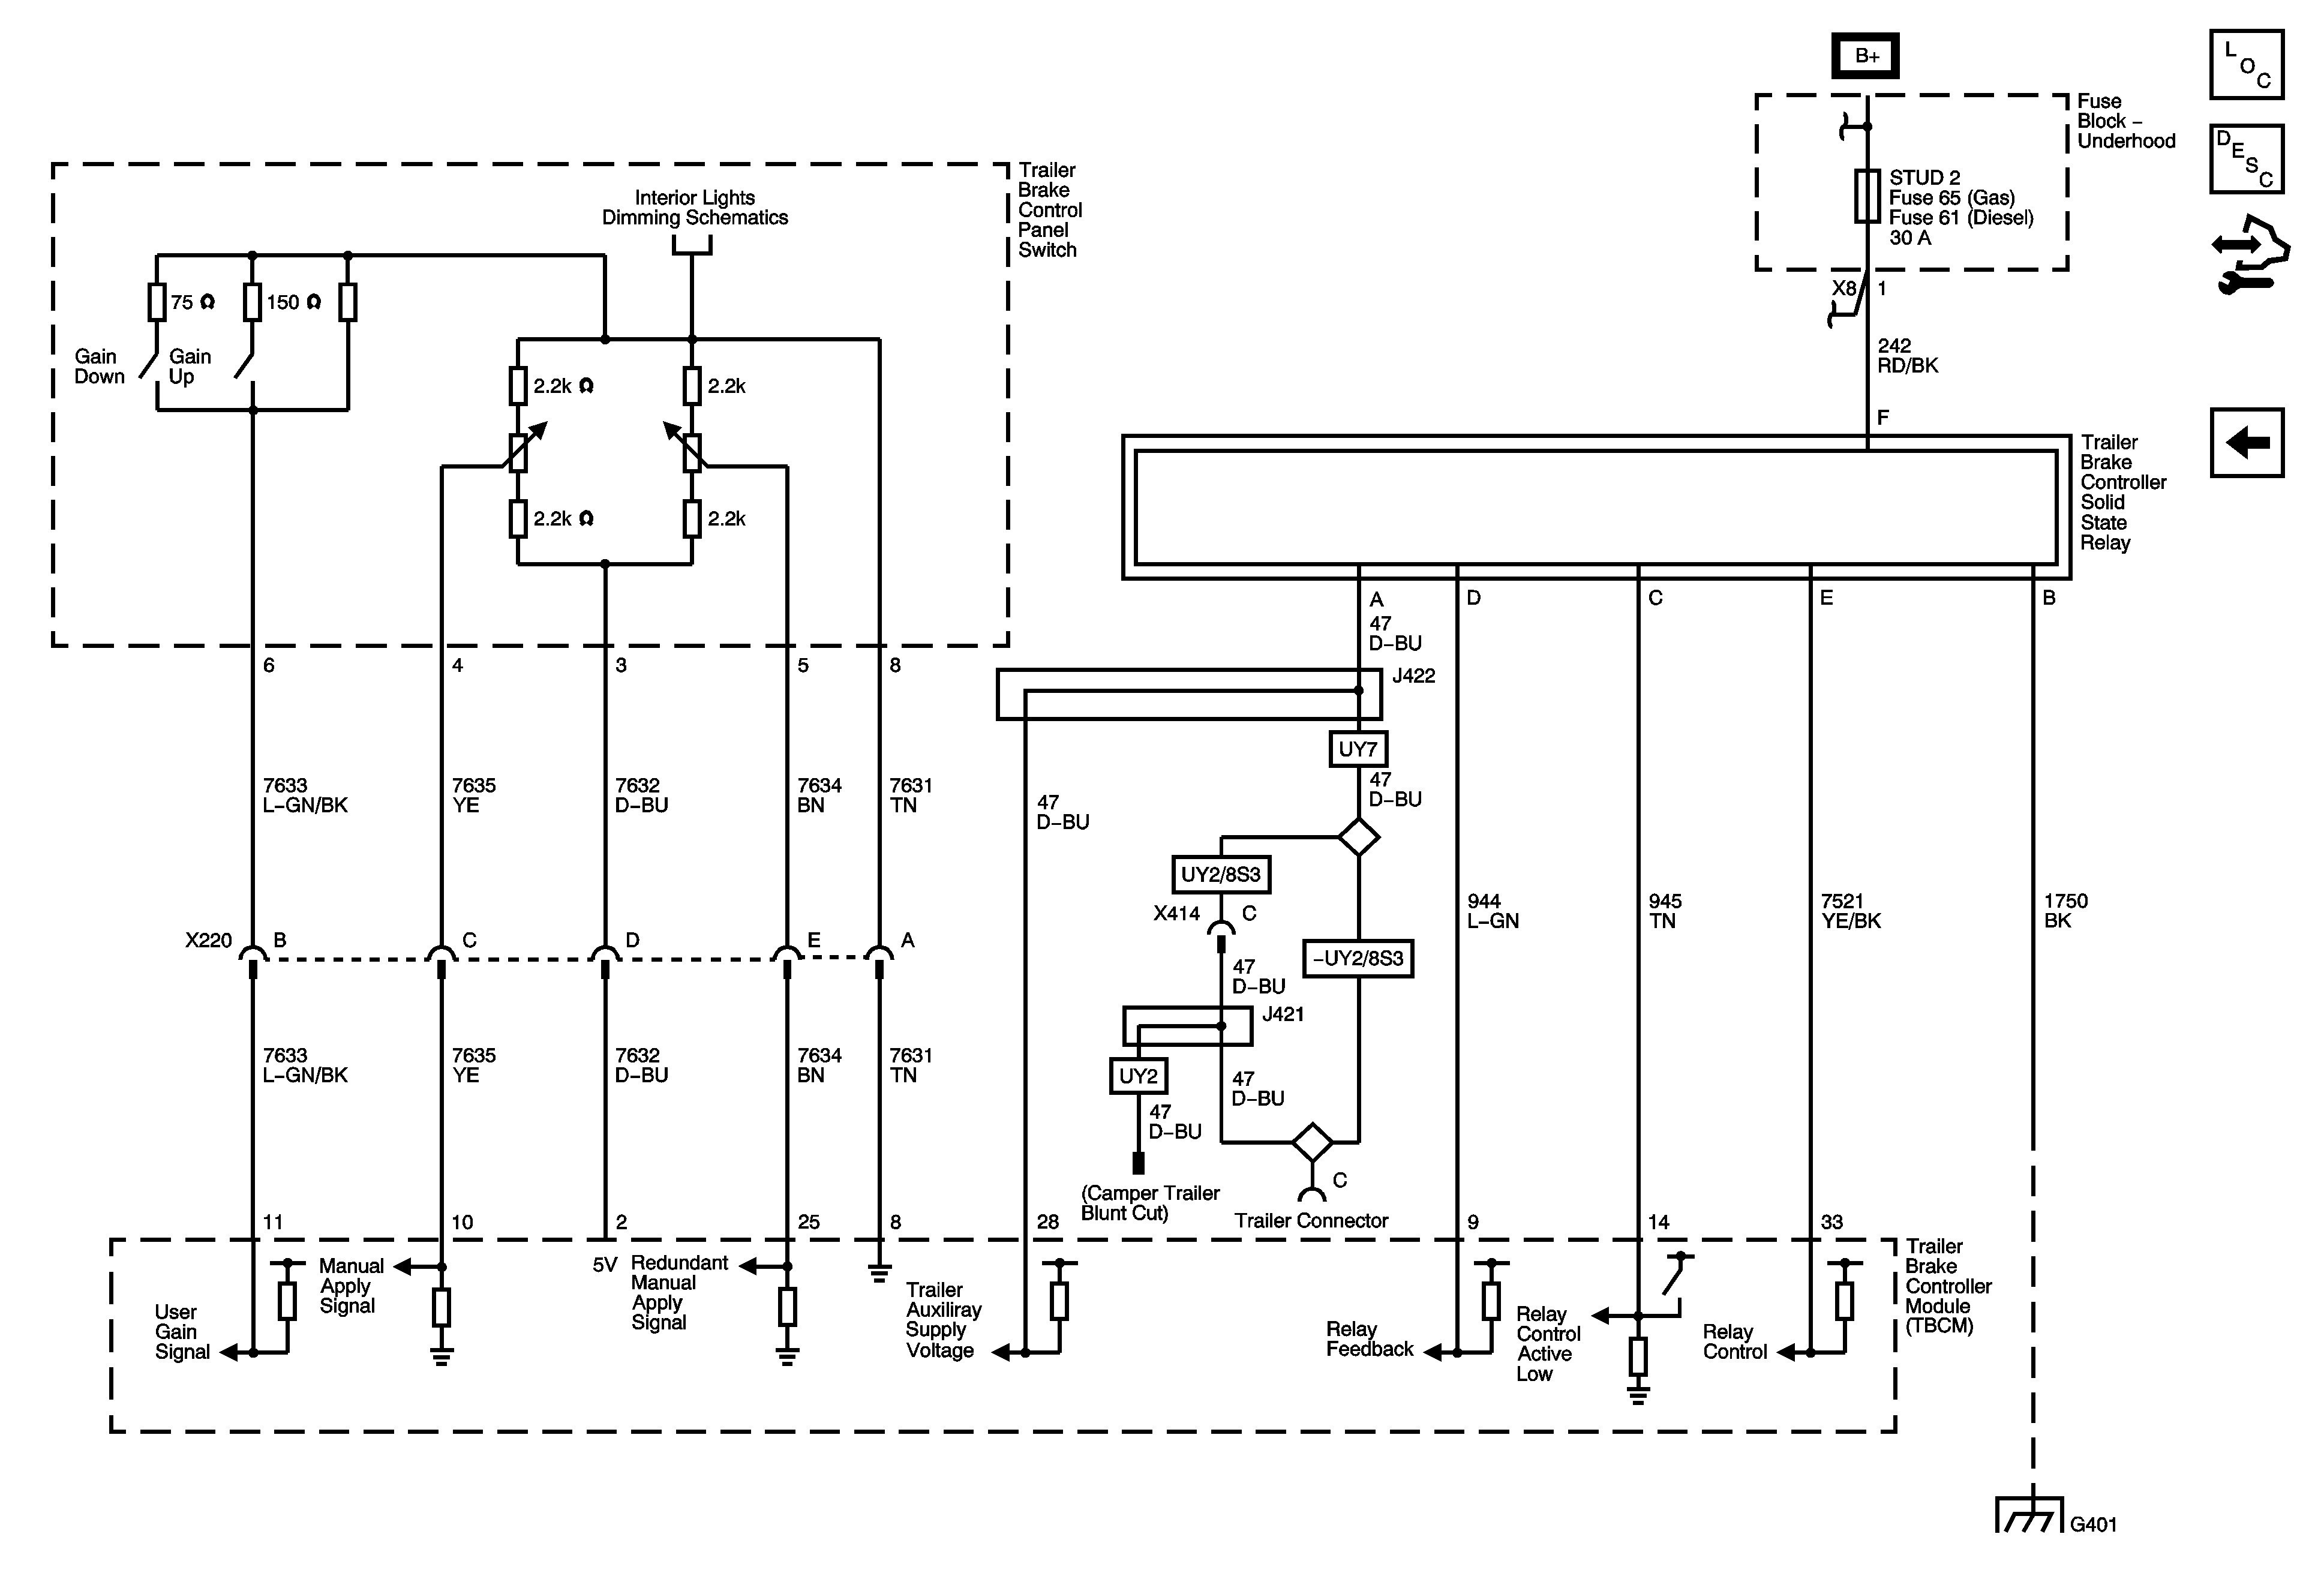 Wiring Diagram for Redarc Electric Brake Controller Inspirationa Wiring Diagram for Trailer with Brakes 2005 ford F250